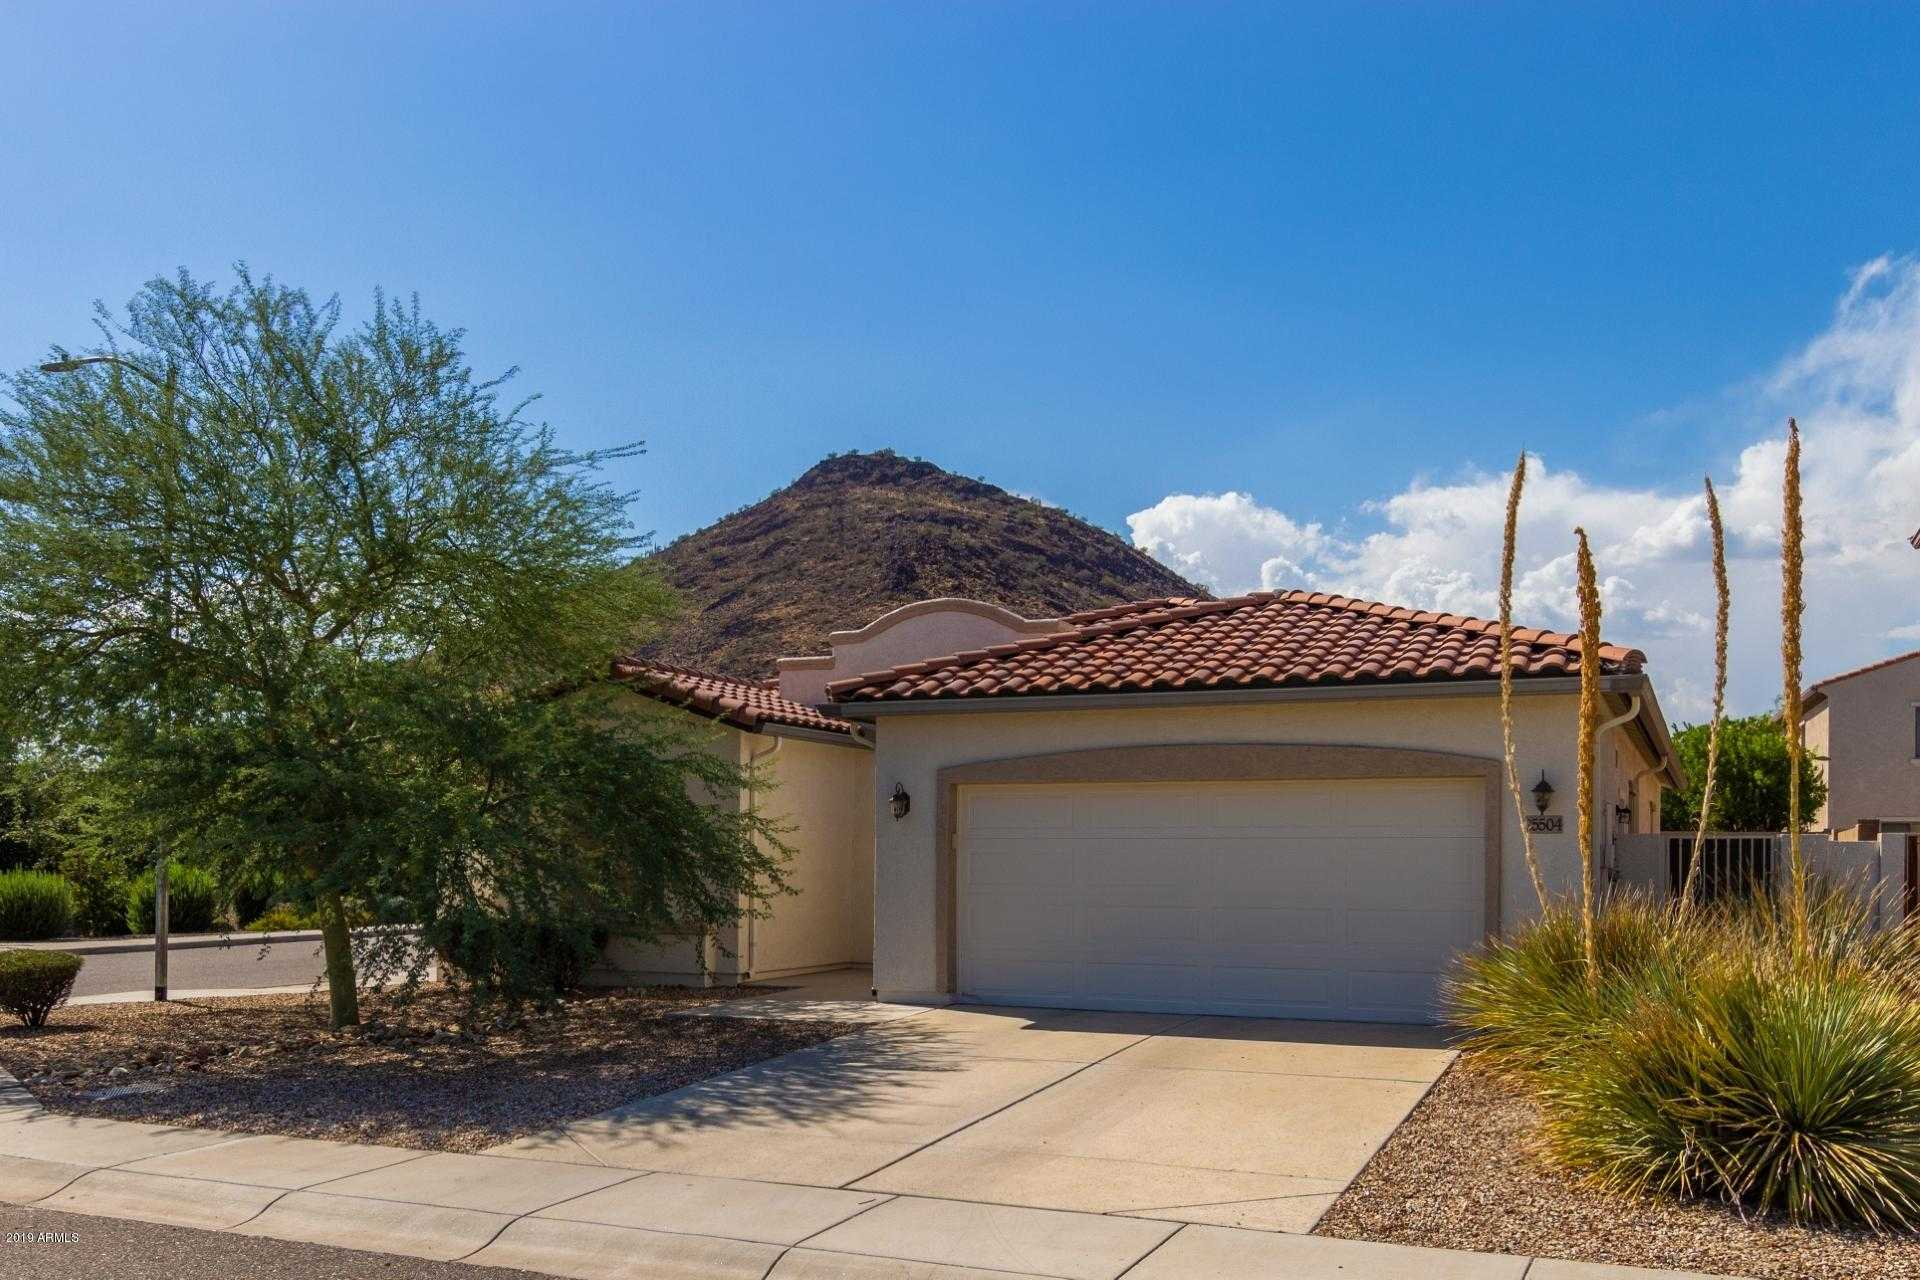 $349,000 - 3Br/2Ba - Home for Sale in Stetson Valley Parcels 2 3 4, Phoenix